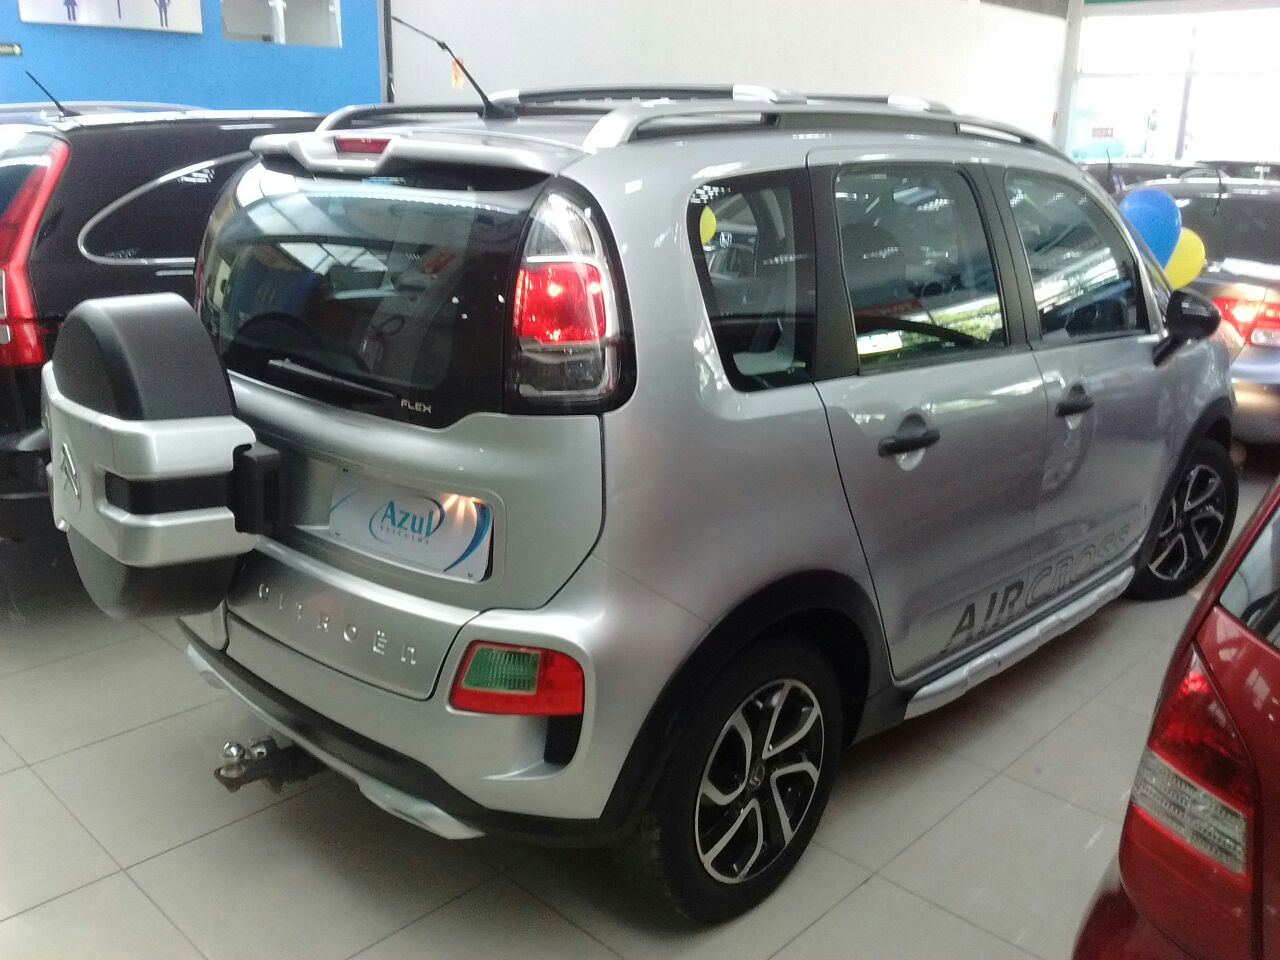 CITROEN AIRCROSS GLX 1.6 16V FLEX